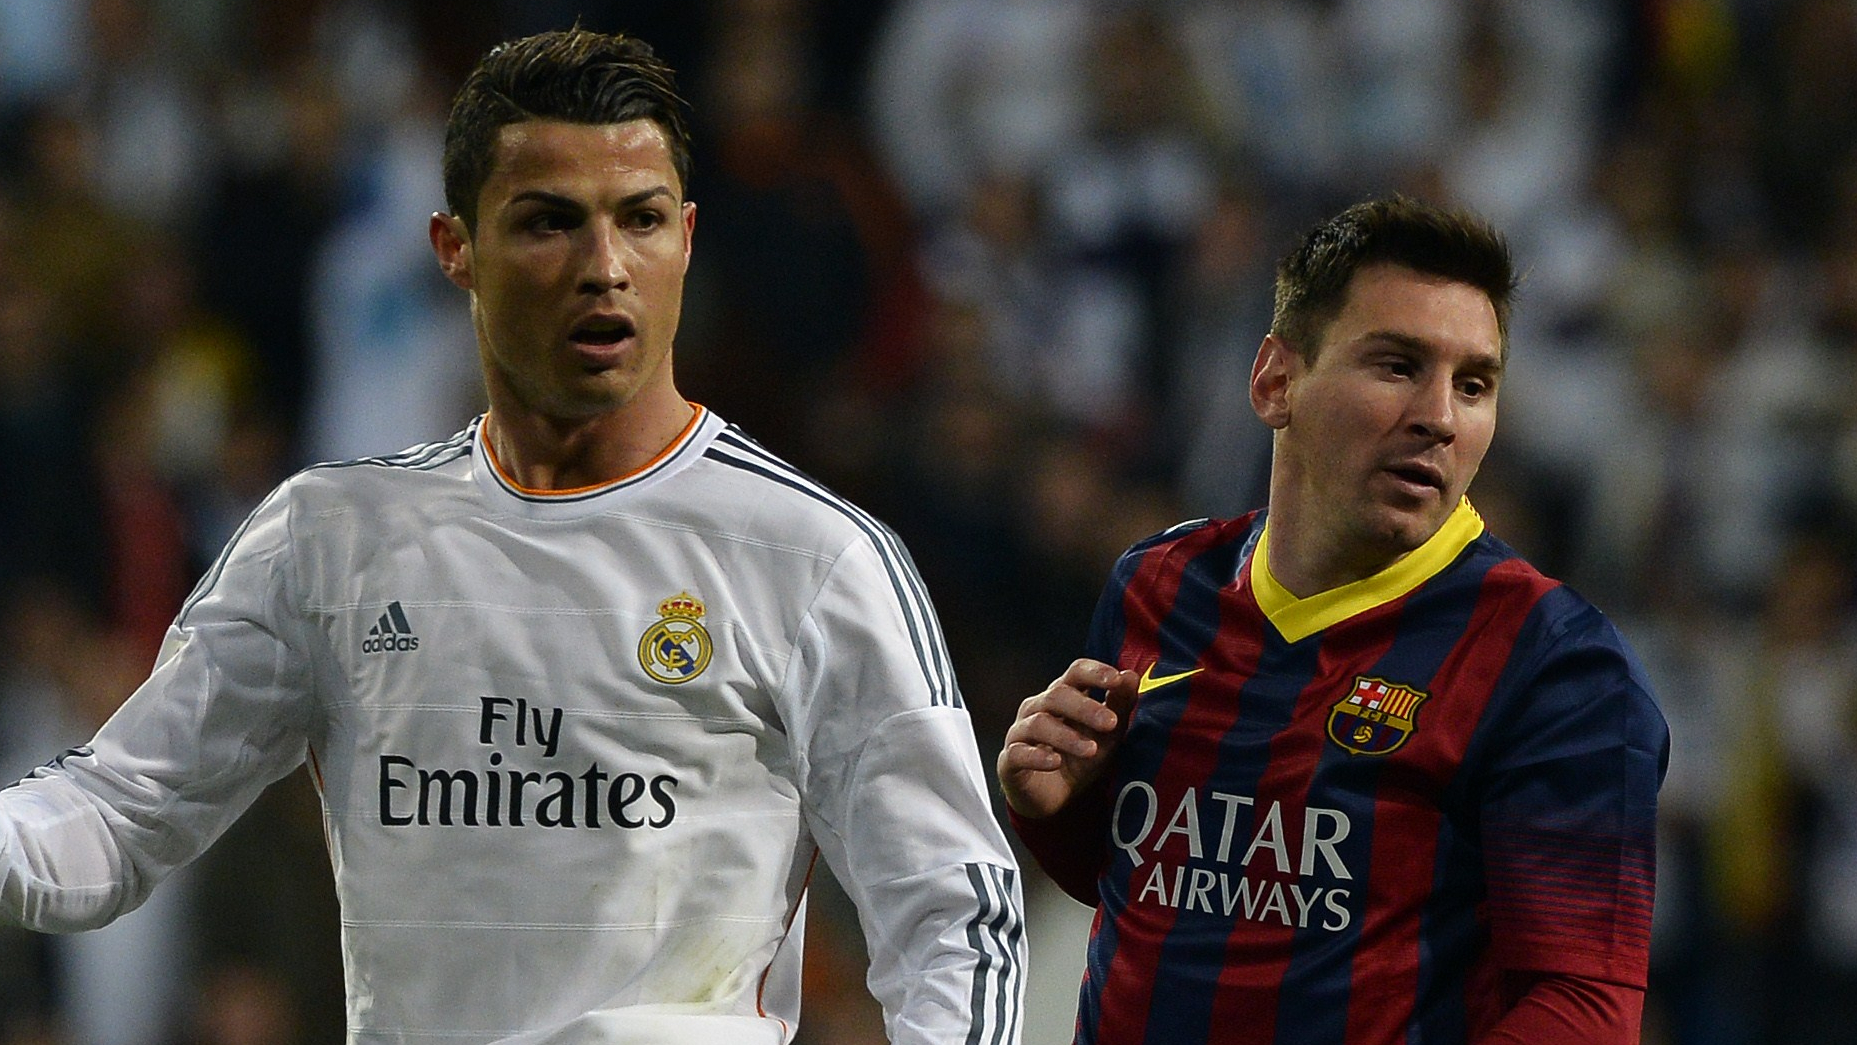 UEFA 'team of the year' includes Messi but zero Madrid players